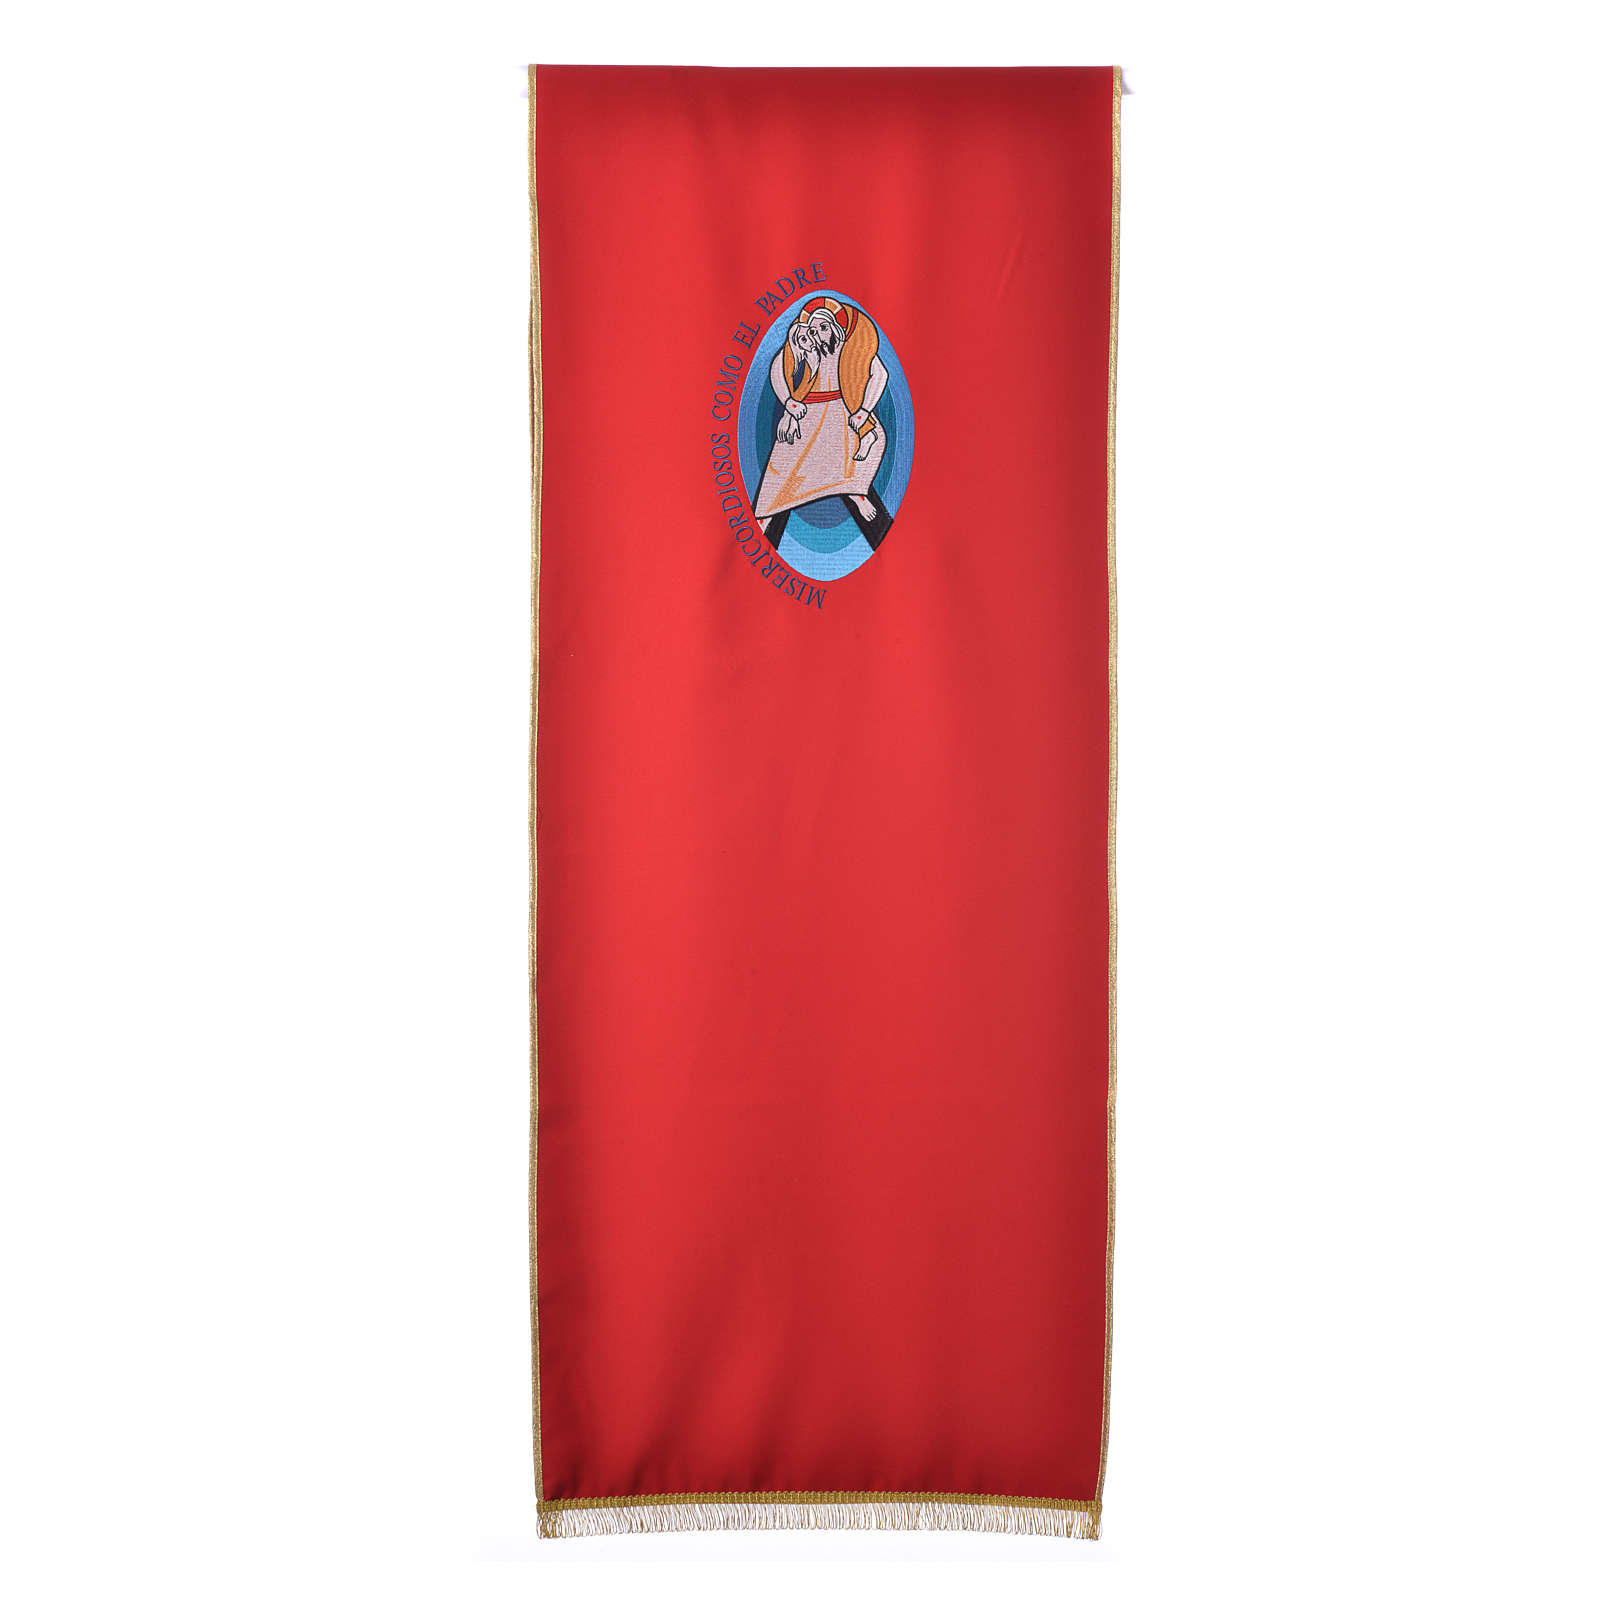 STOCK Jubilee lectern cover with SPANISH writing 4